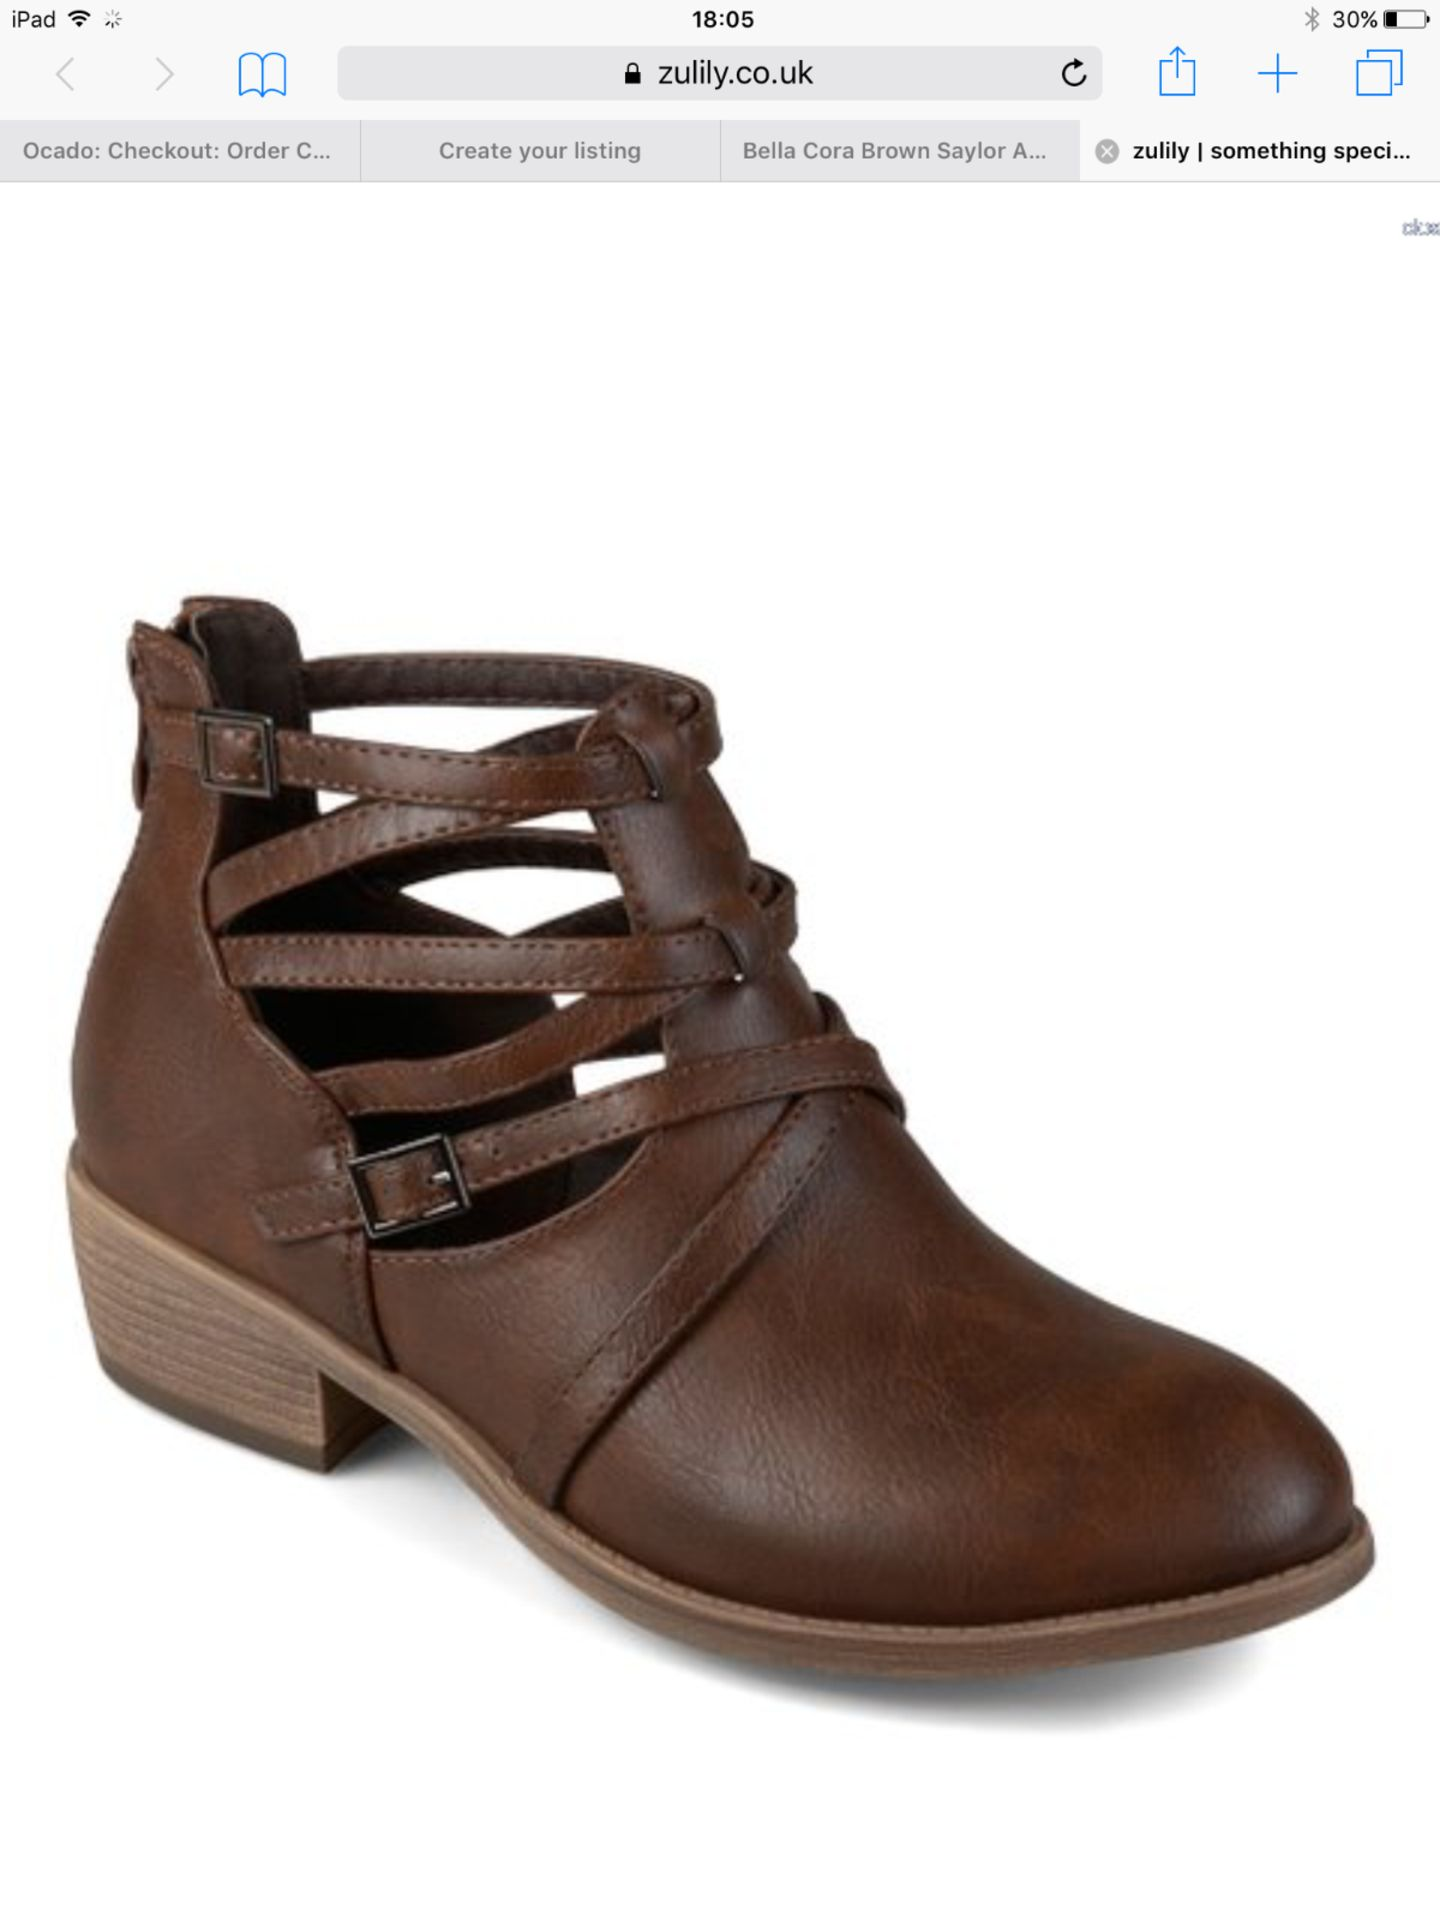 Lot 57 - Bella Cora Brown Saylor Ankle Boot, Size Uk 7.5 Us 10 (New With Box) [Ref: 54279012-A-002]